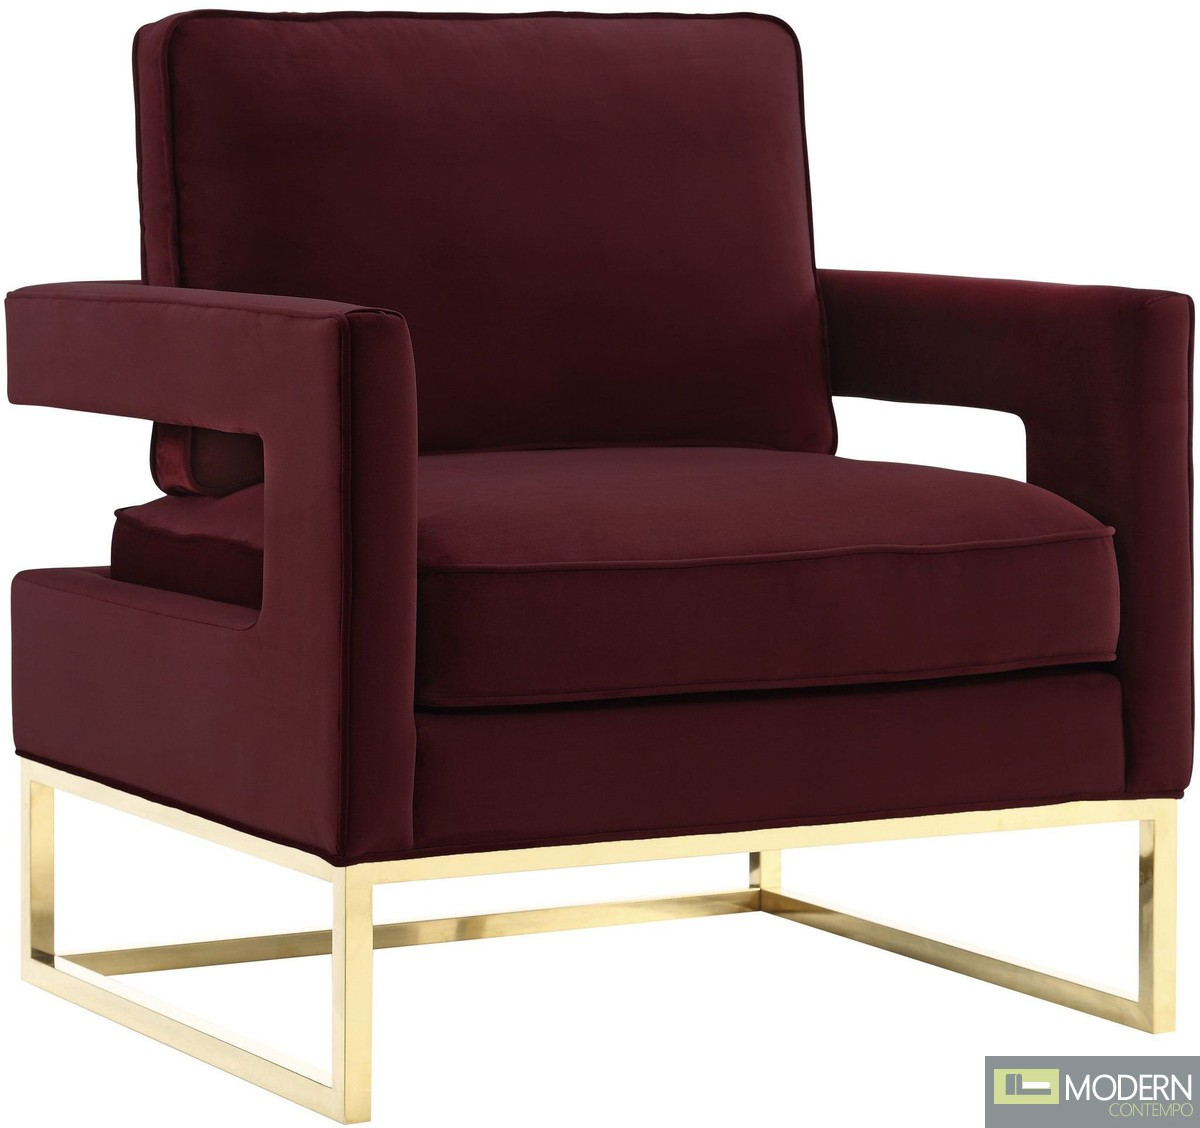 Athene Velvet Chair Scarlet & gold